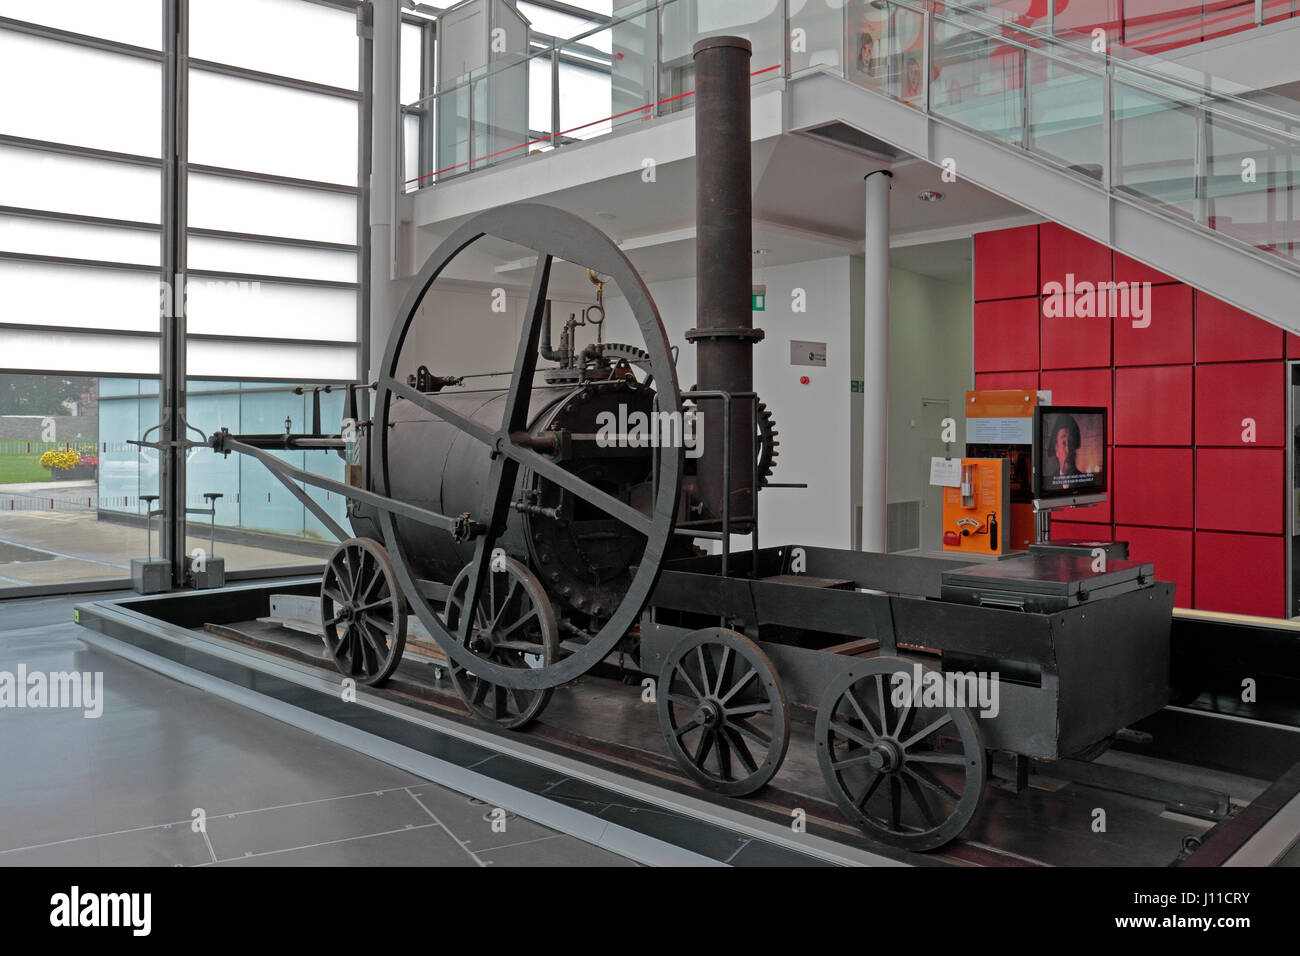 Trevithick's Penydarren tramway locomotive (replica) on display in the National Waterfront Museum, Swansea, - Stock Image